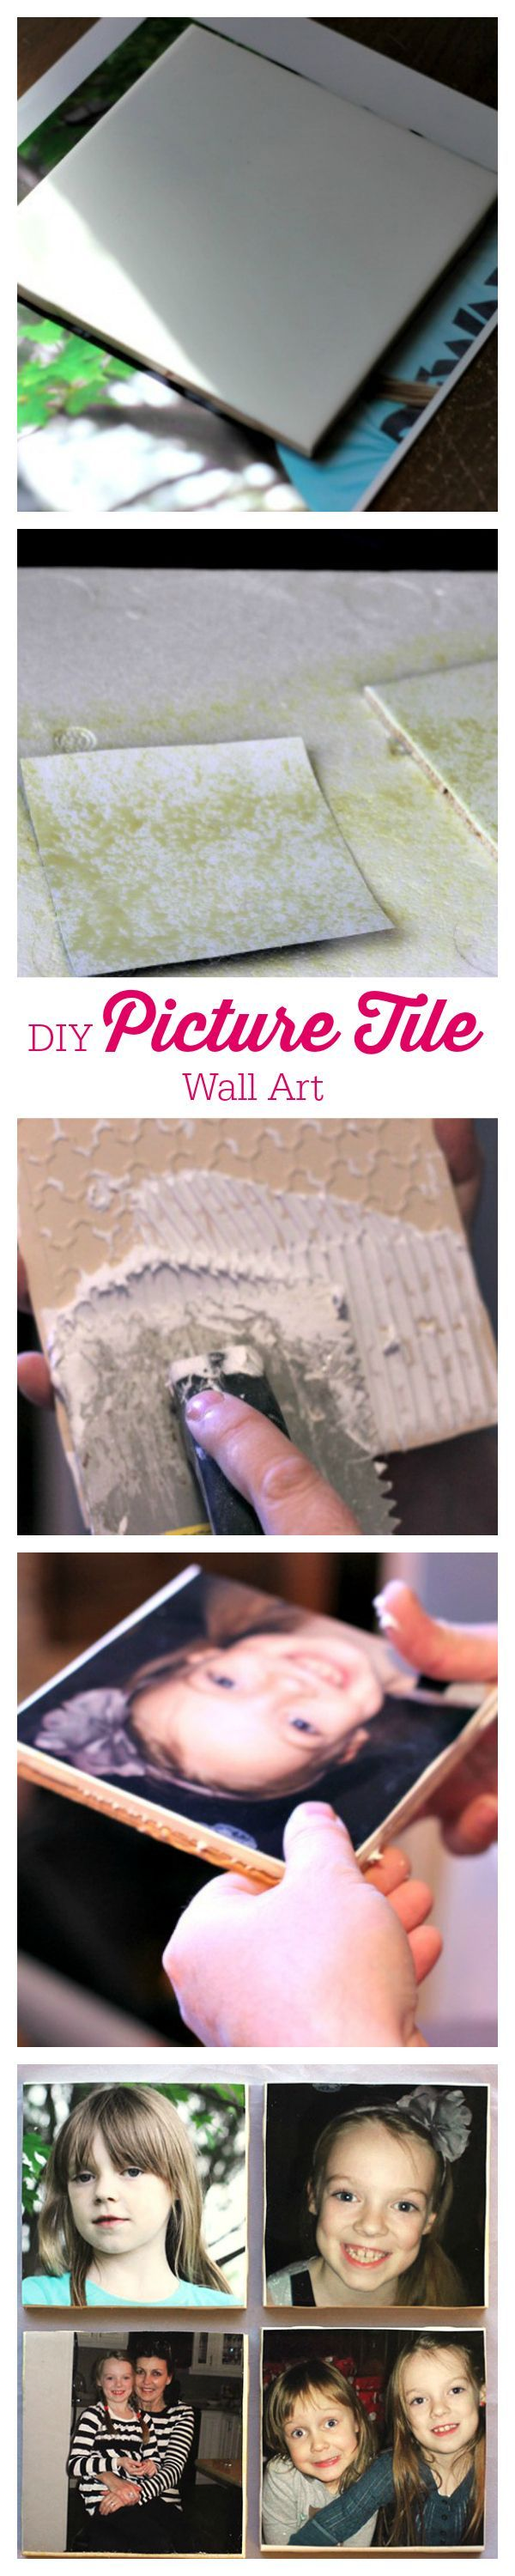 DIY Picture Tile Wall Art - Decorate your home with this simple step-by-step tutorial!